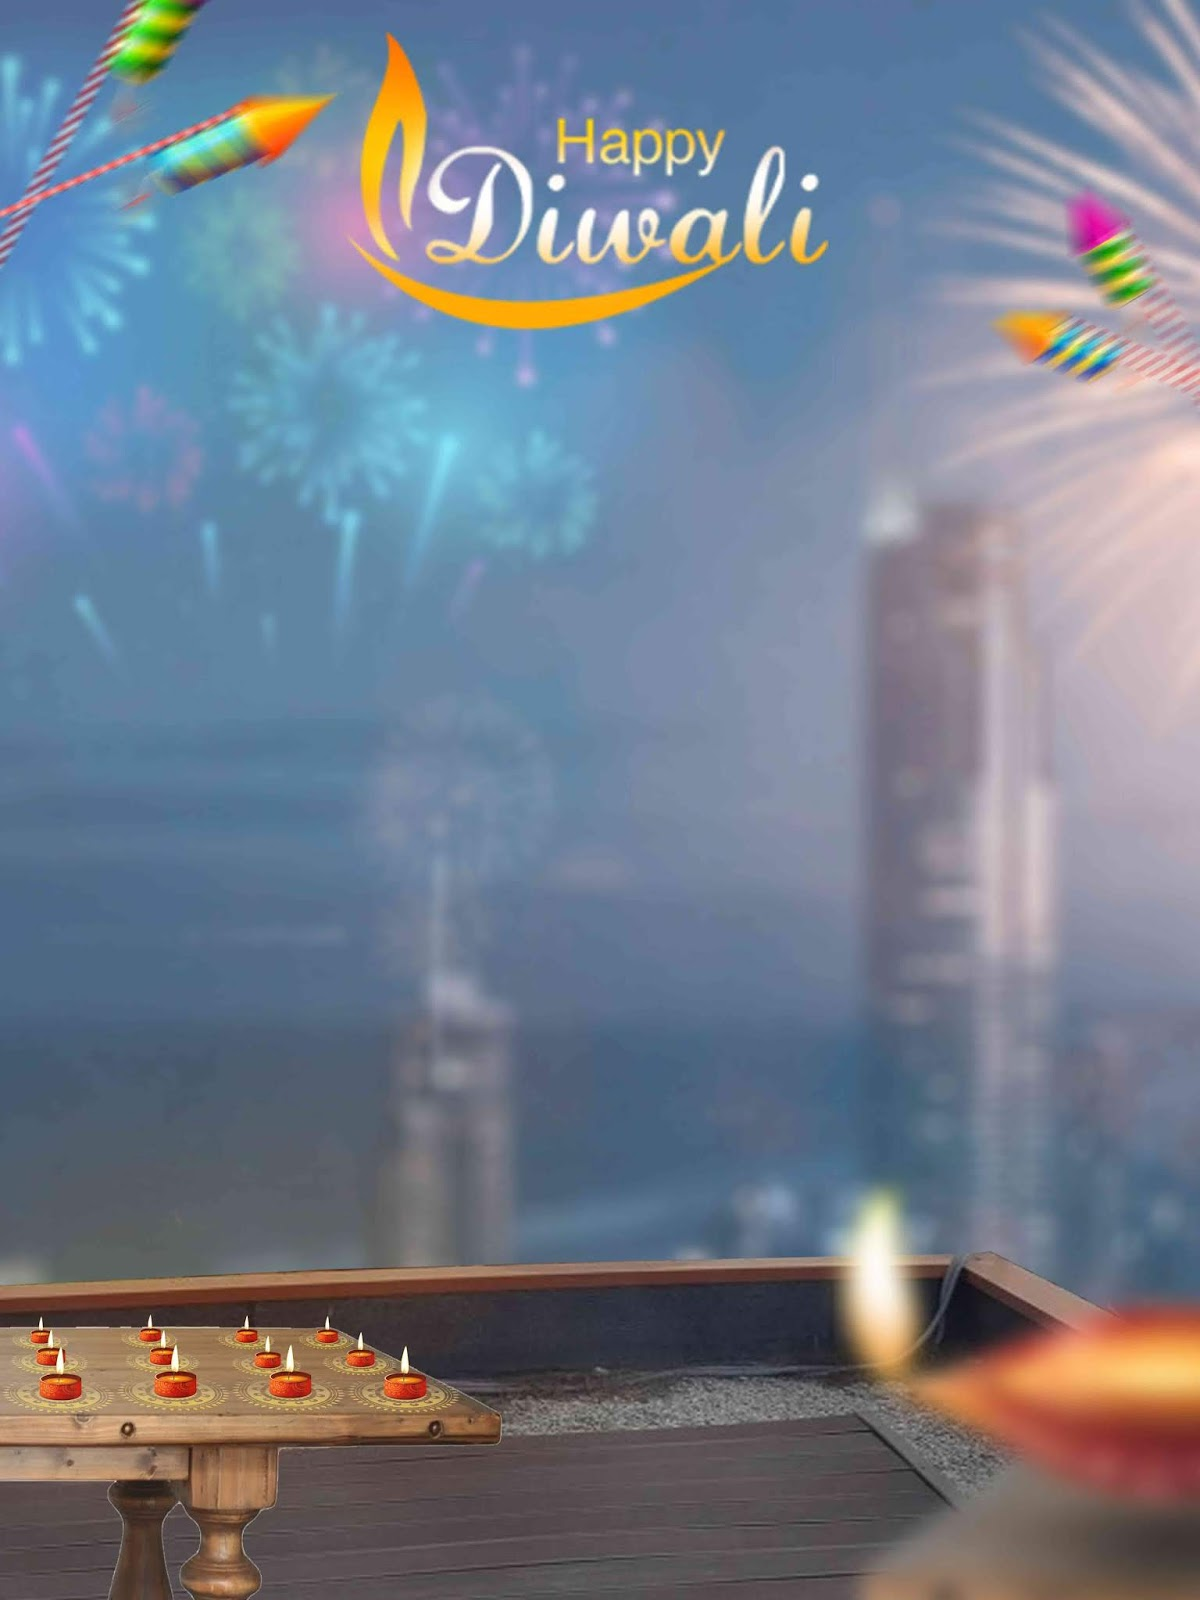 diwali hd background for